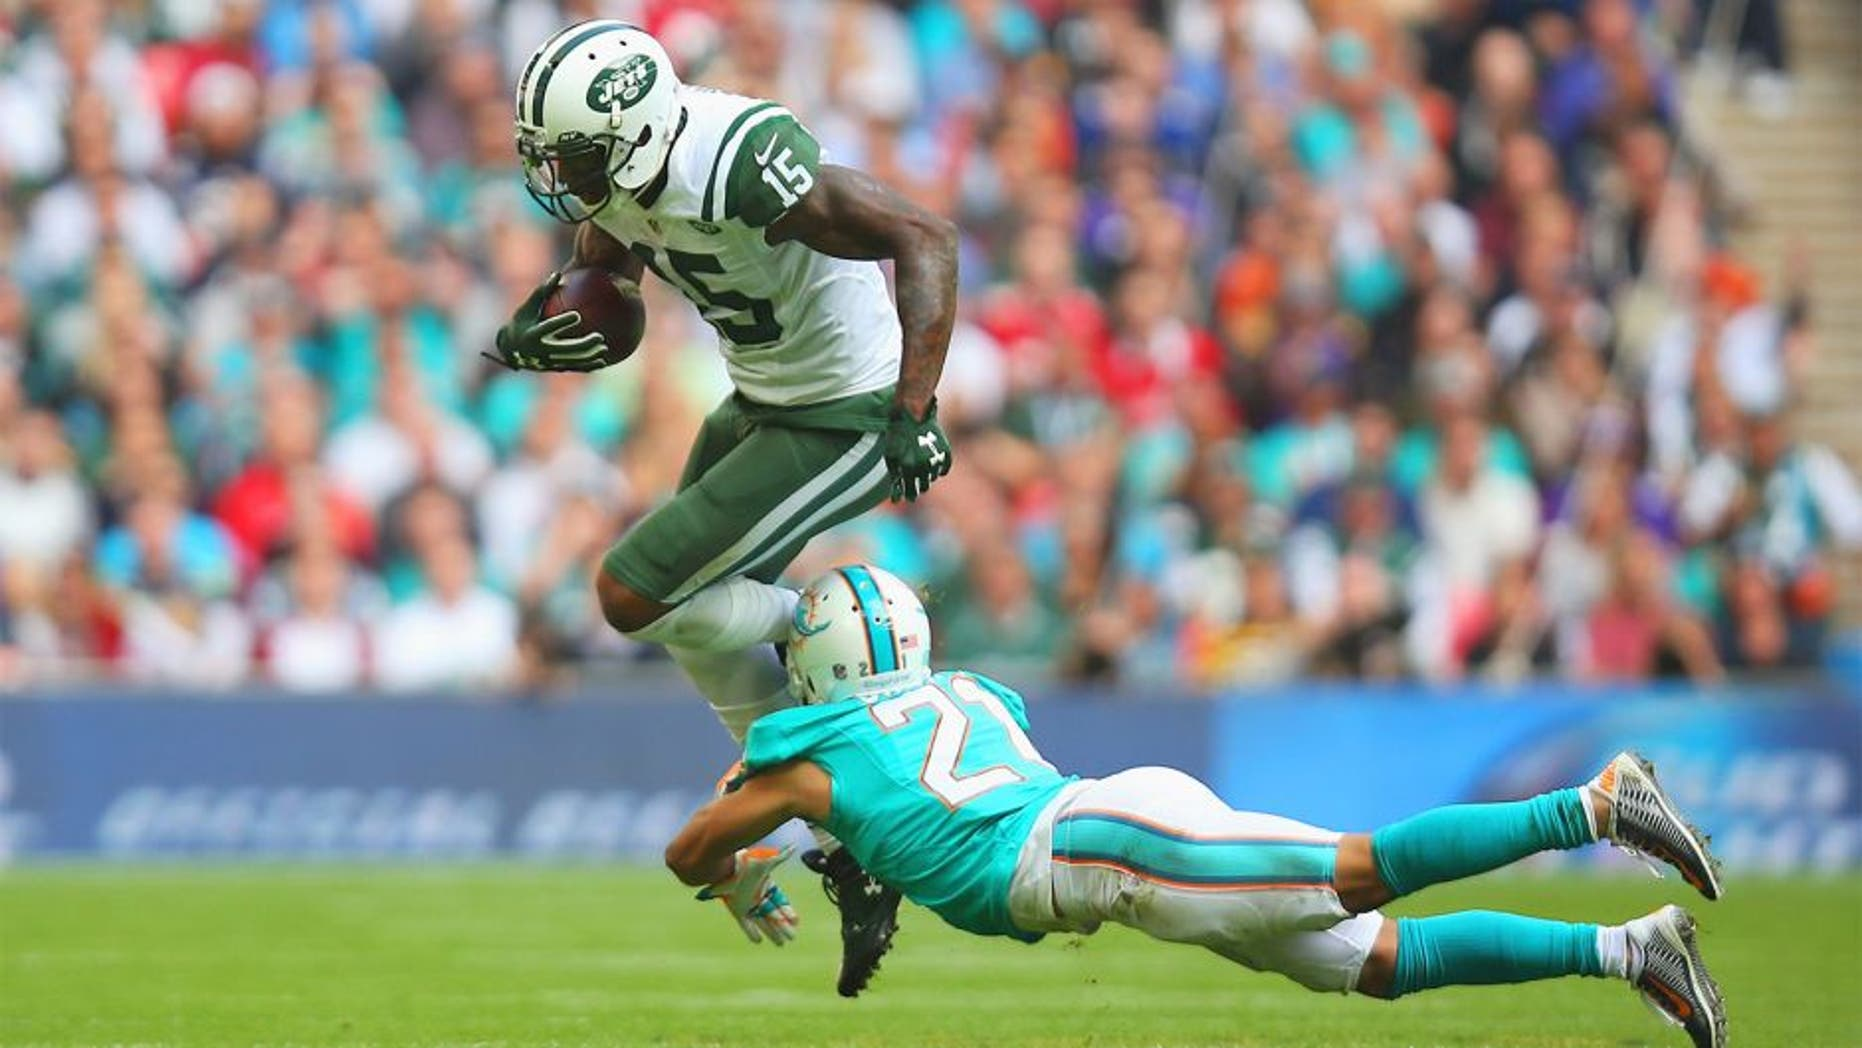 LONDON, ENGLAND - OCTOBER 04: Brandon Marshall #15 of the New York Jets is tackled by Brent Grimes #21 of the Miami Dolphins during the game at Wembley Stadium on October 4, 2015 in London, England. (Photo by Bryn Lennon/Getty Images)